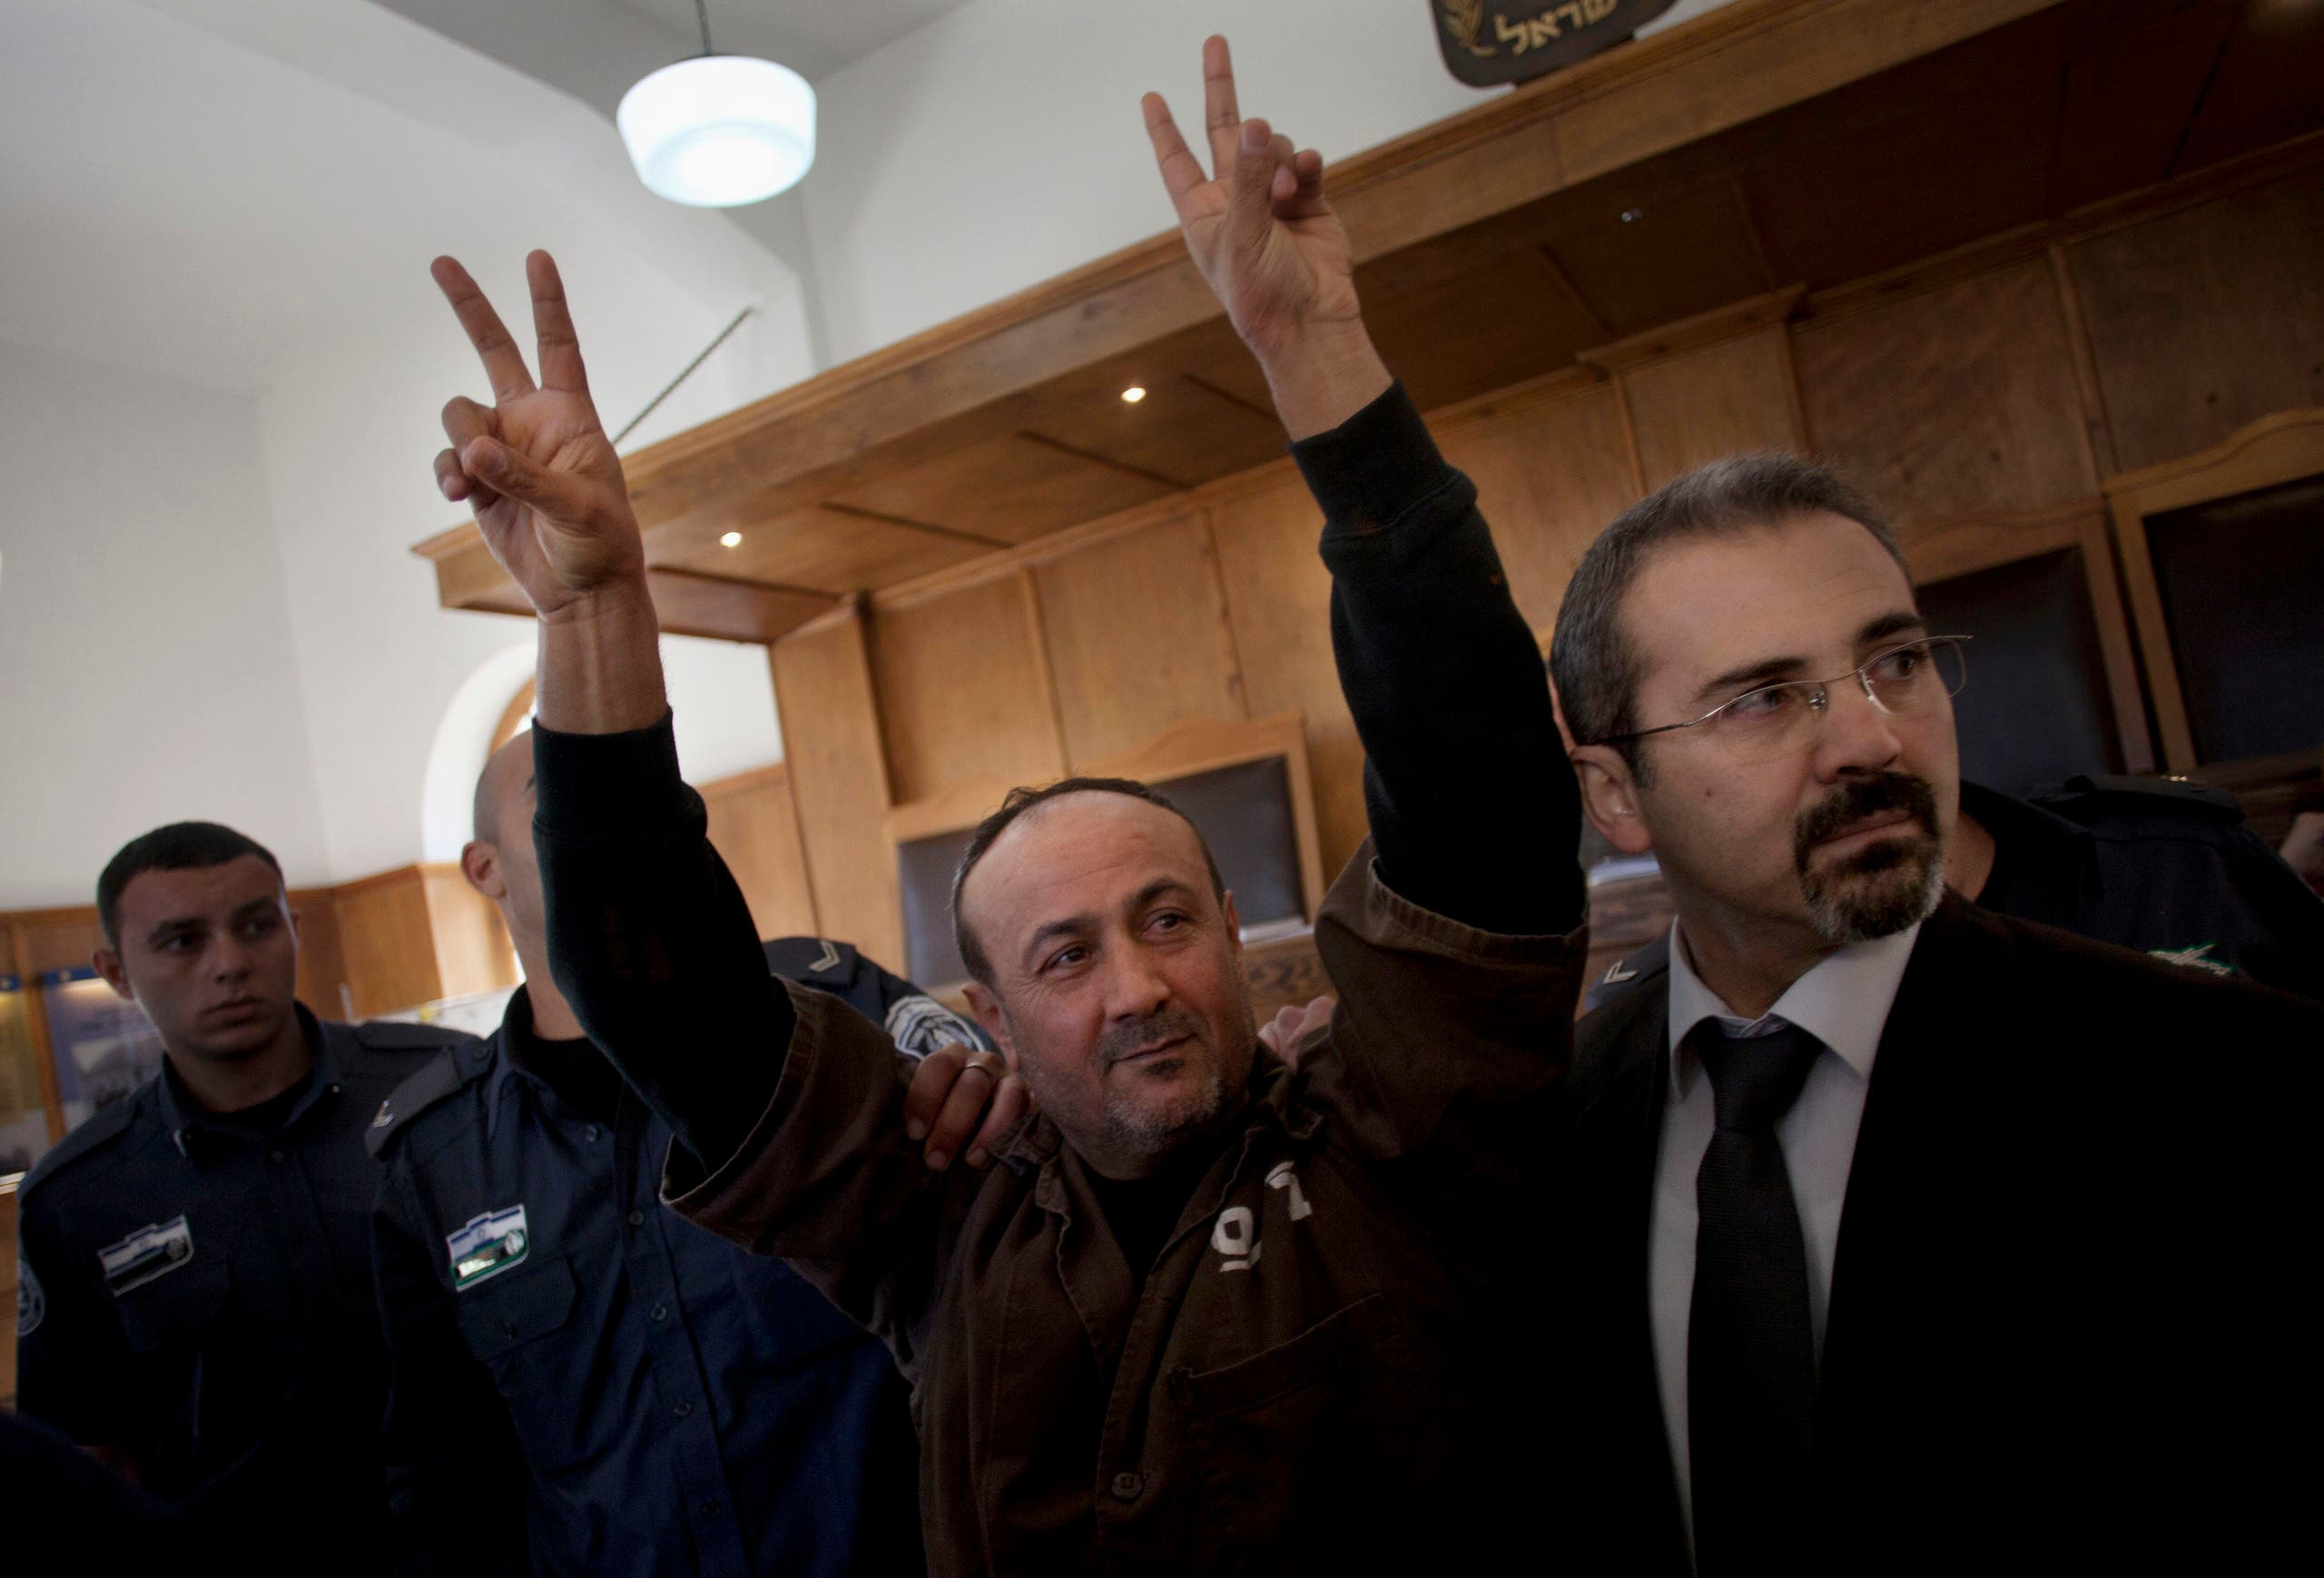 Senior Fatah leader Marwan Barghouti makes the victory sign in front of the media during his arrival to testify in a trial at a Jerusalem court on Jan. 25, 2012. (AP)